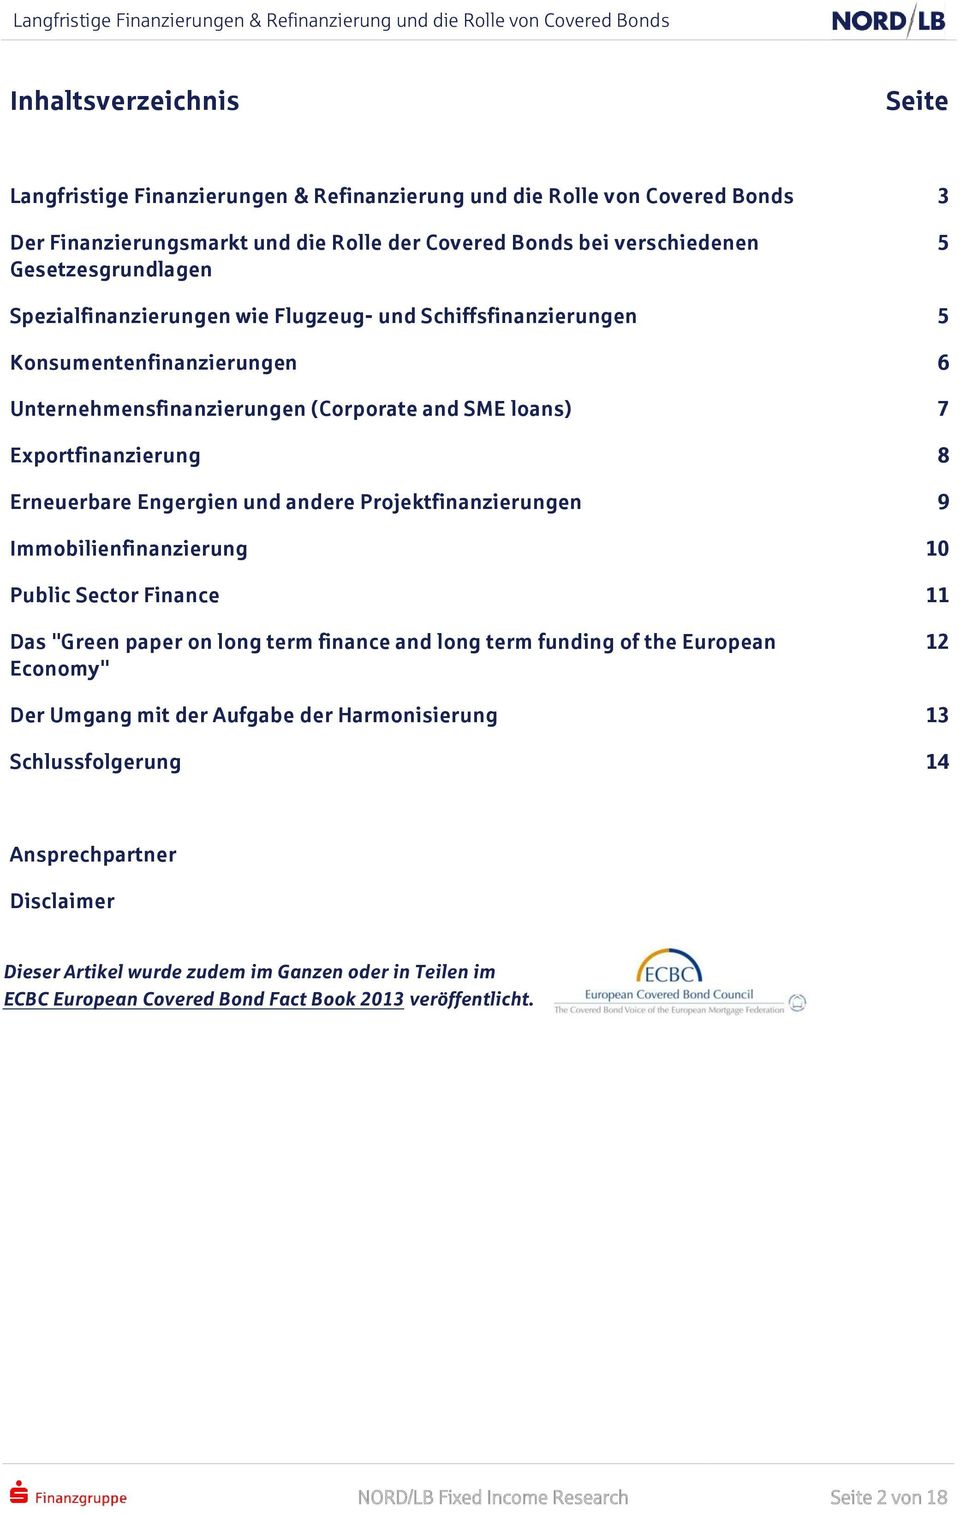 "andere Projektfinanzierungen 9 Immobilienfinanzierung 10 Public Sector Finance 11 Das ""Green paper on long term finance and long term funding of the European Economy"" 12 Der Umgang mit der Aufgabe"